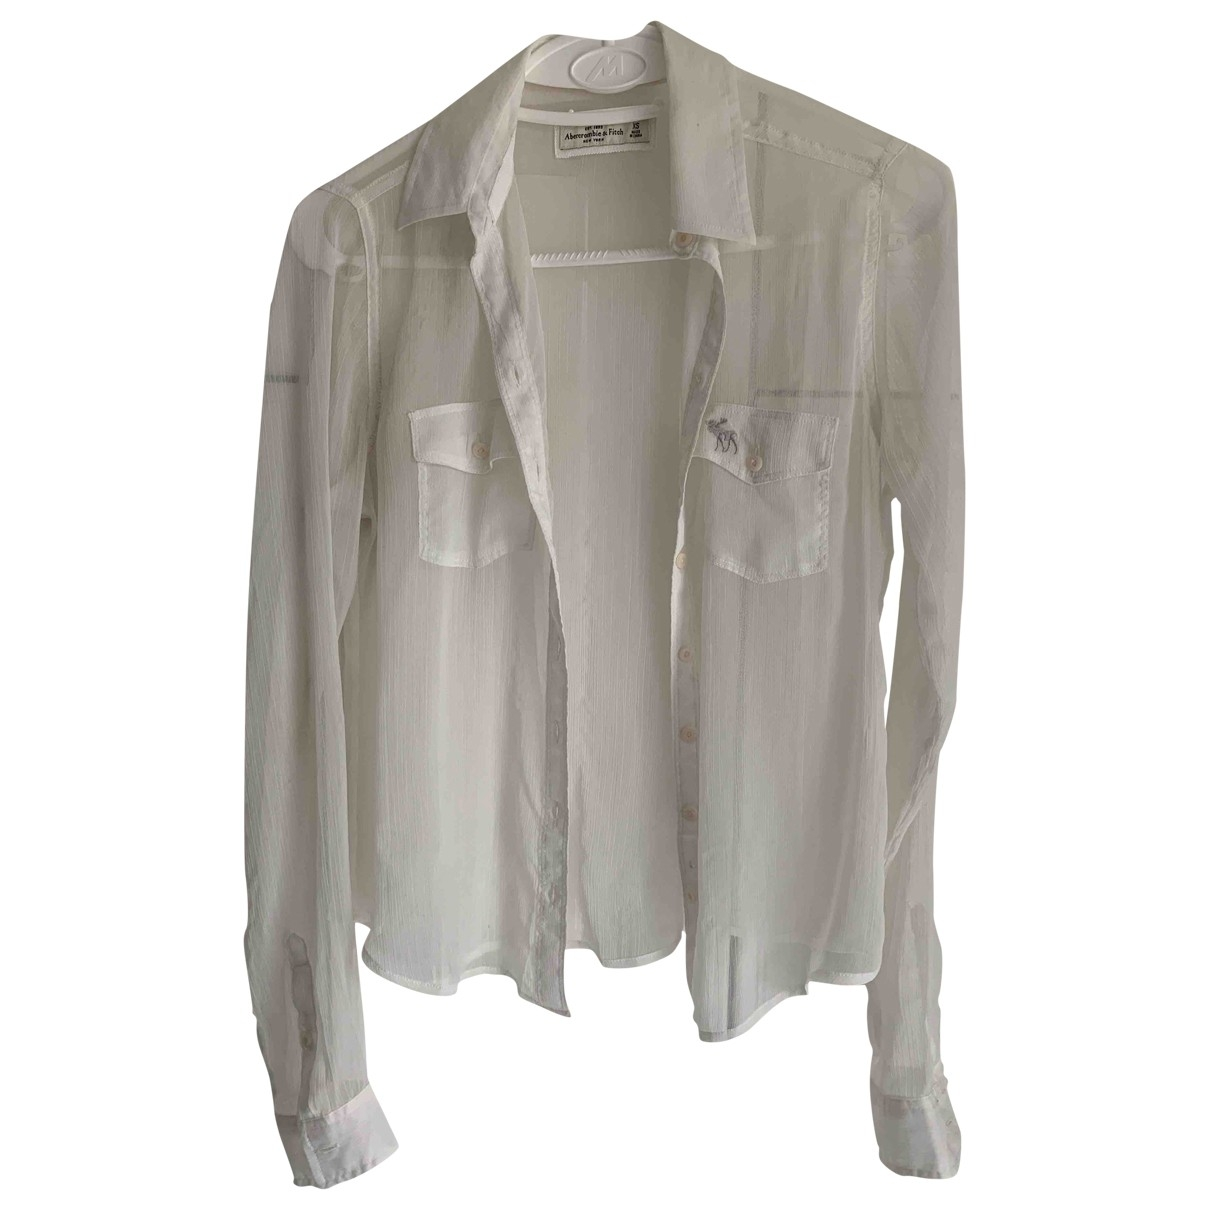 Abercrombie & Fitch \N White  top for Women XS International